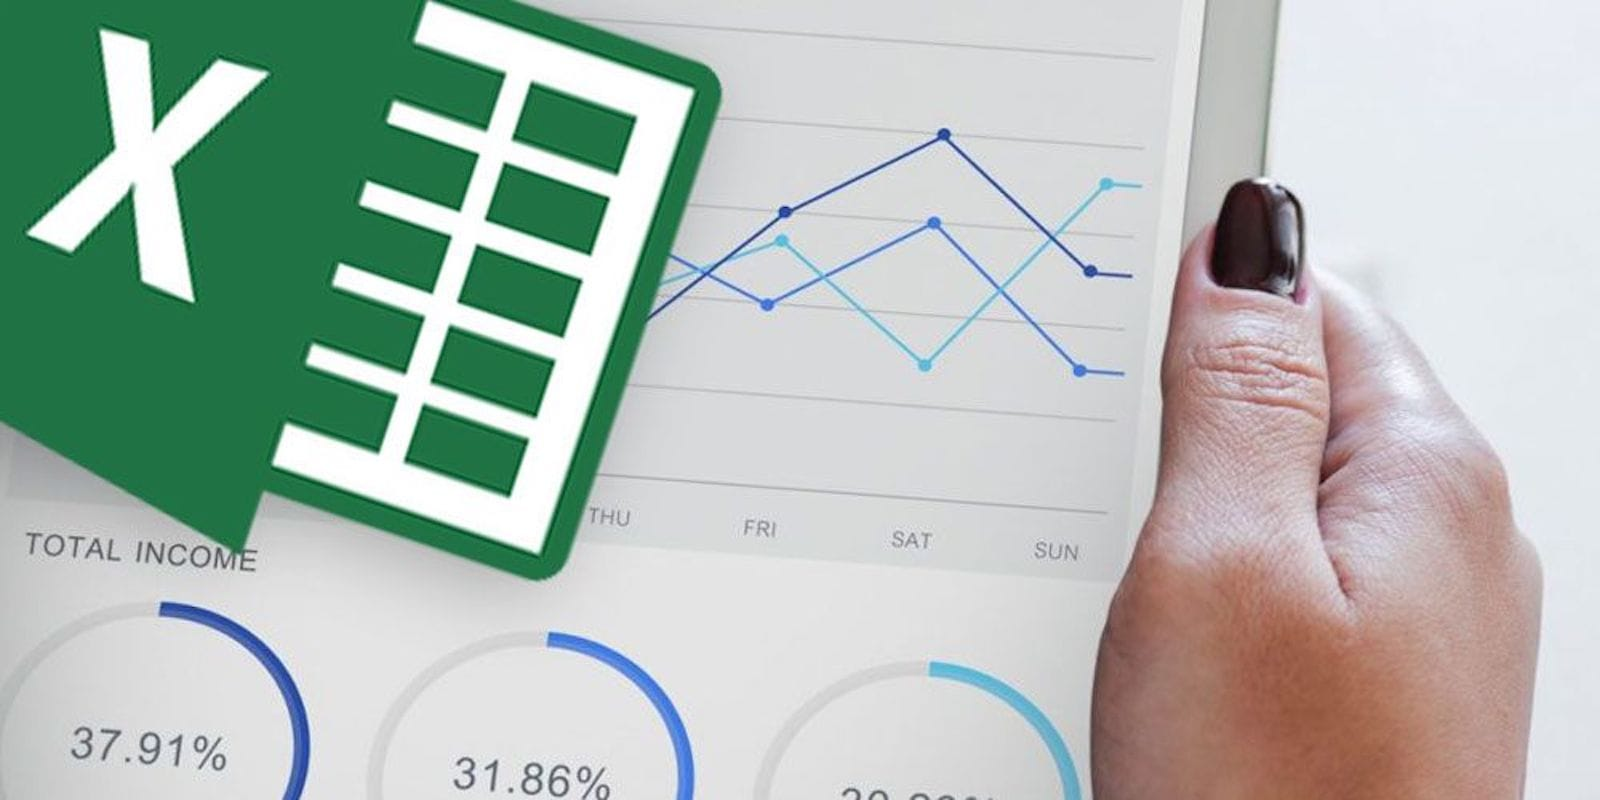 Become an expert in Excel data analytics with this massively discounted lesson bundle.